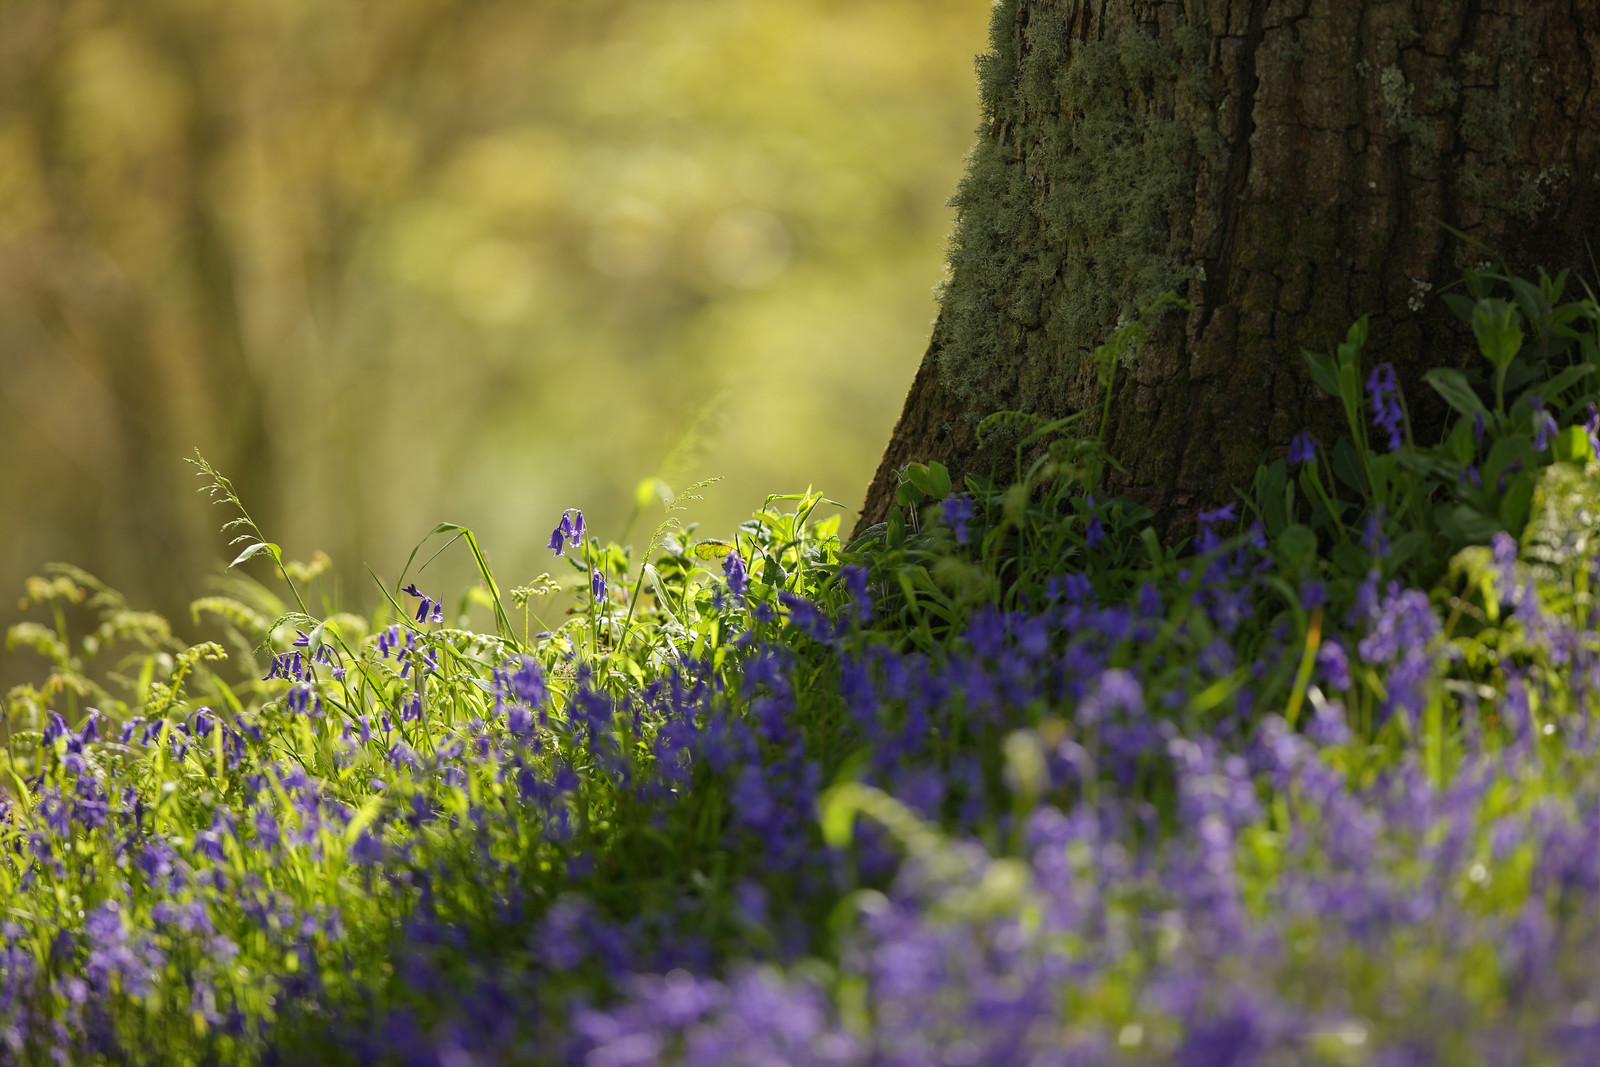 Oak Tree & Bluebells